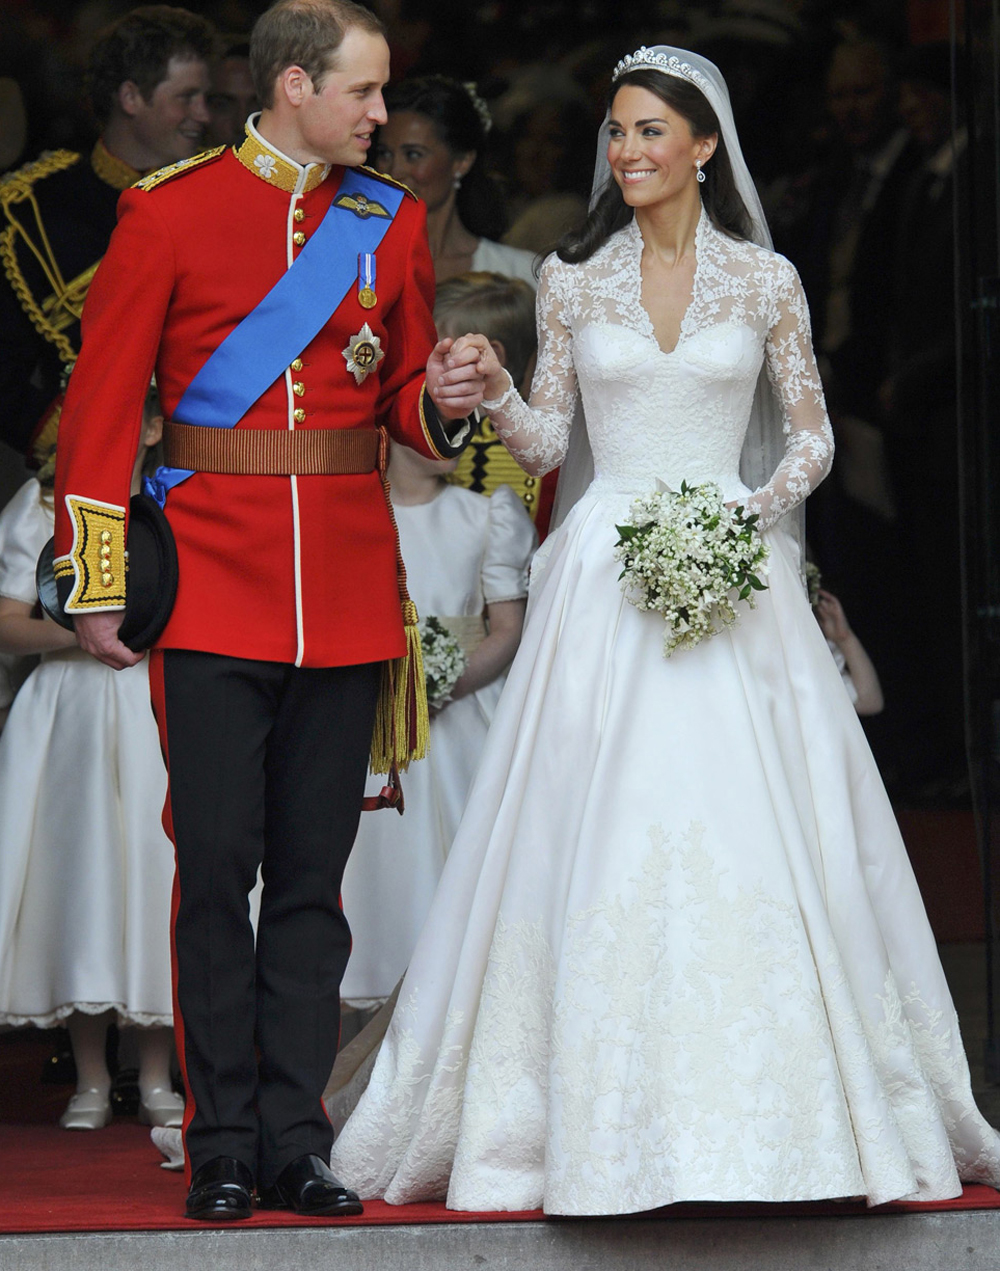 Prince+William+The+Duke+of+Cambridge+and+Kate+Middleton+Royal+Wedding+Ceremony+Photo+(5) - Royal Kate Middleton